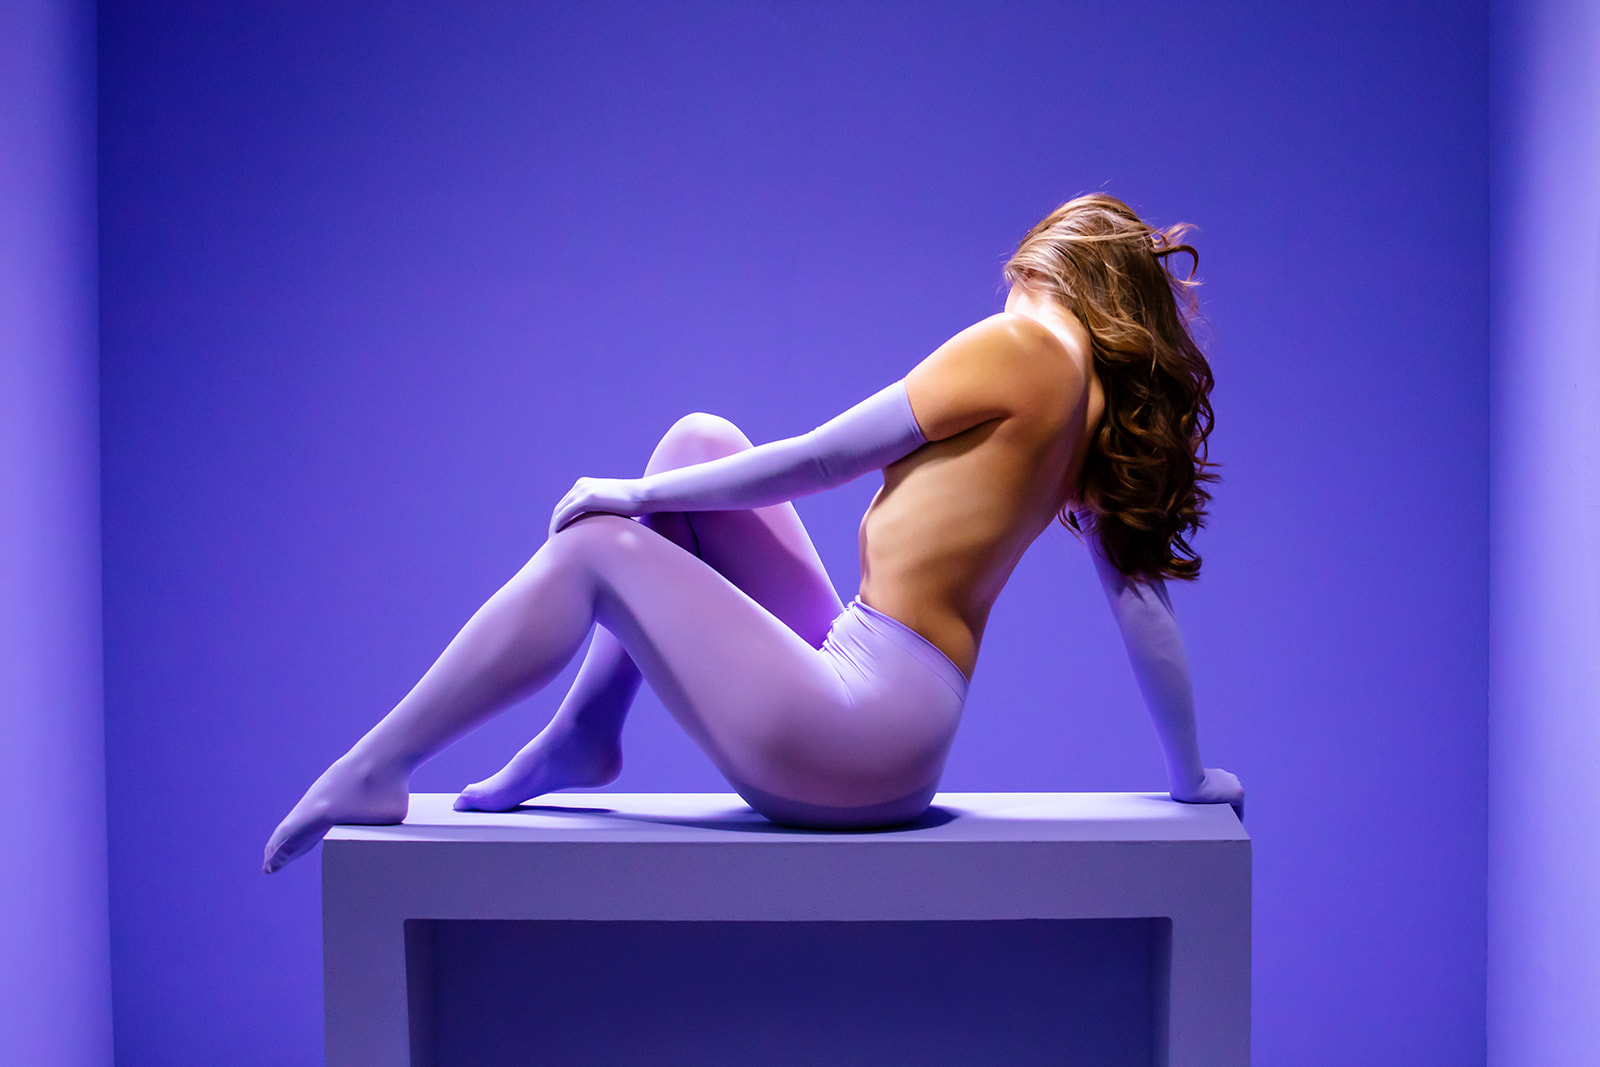 Purple Tights Sculpture in a Purple Cube Editorial - Image Property of www.j-dphoto.com